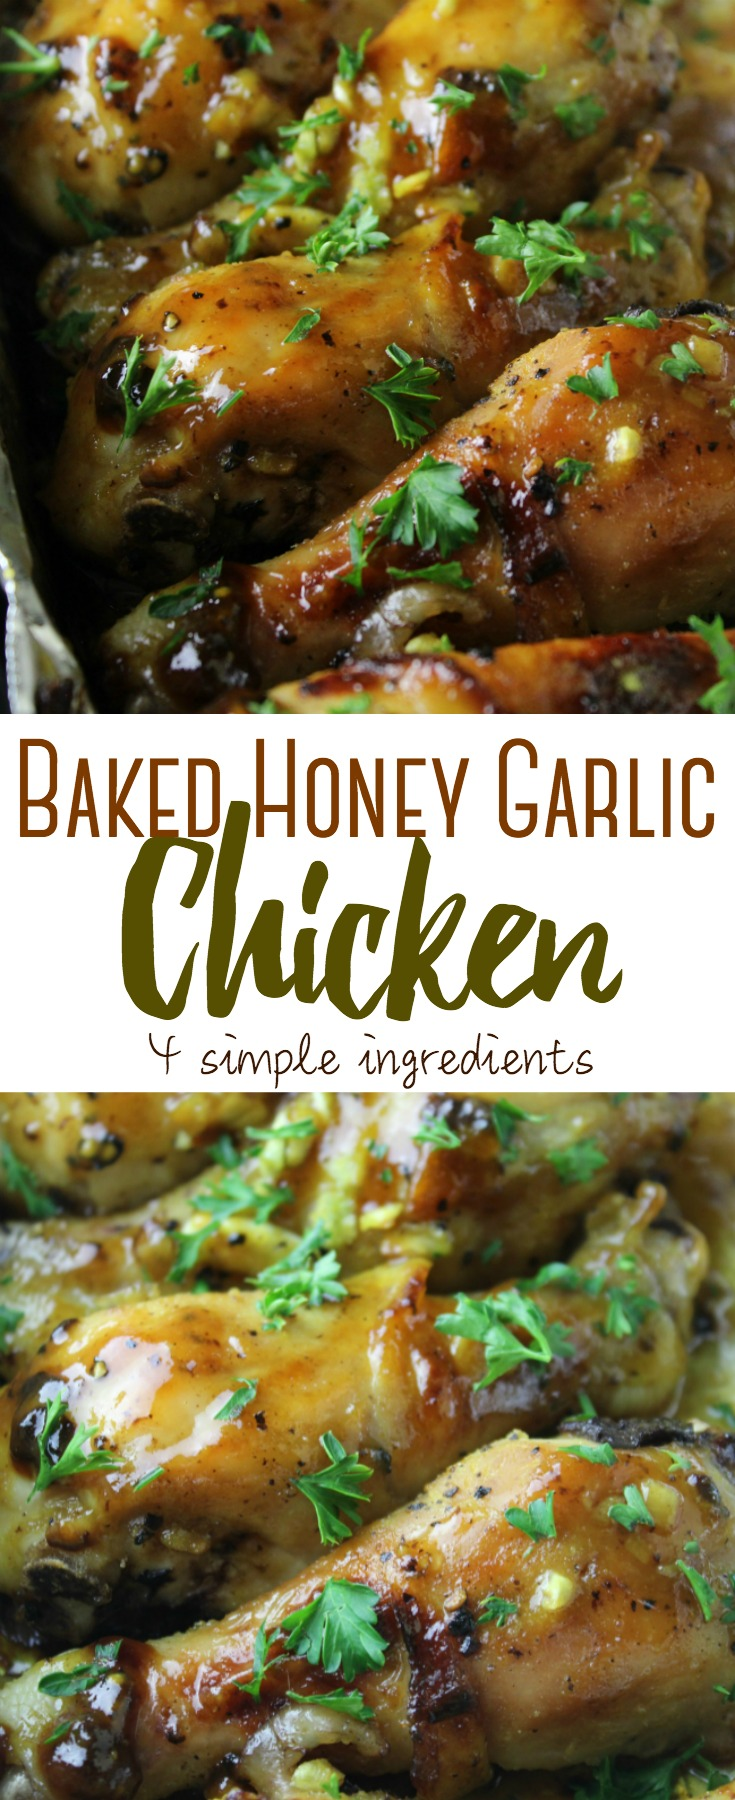 Simple honey garlic chicken drumsticks that are easy to put together with 4 simple ingredients for drumsticks that are finger-lickin' good!!